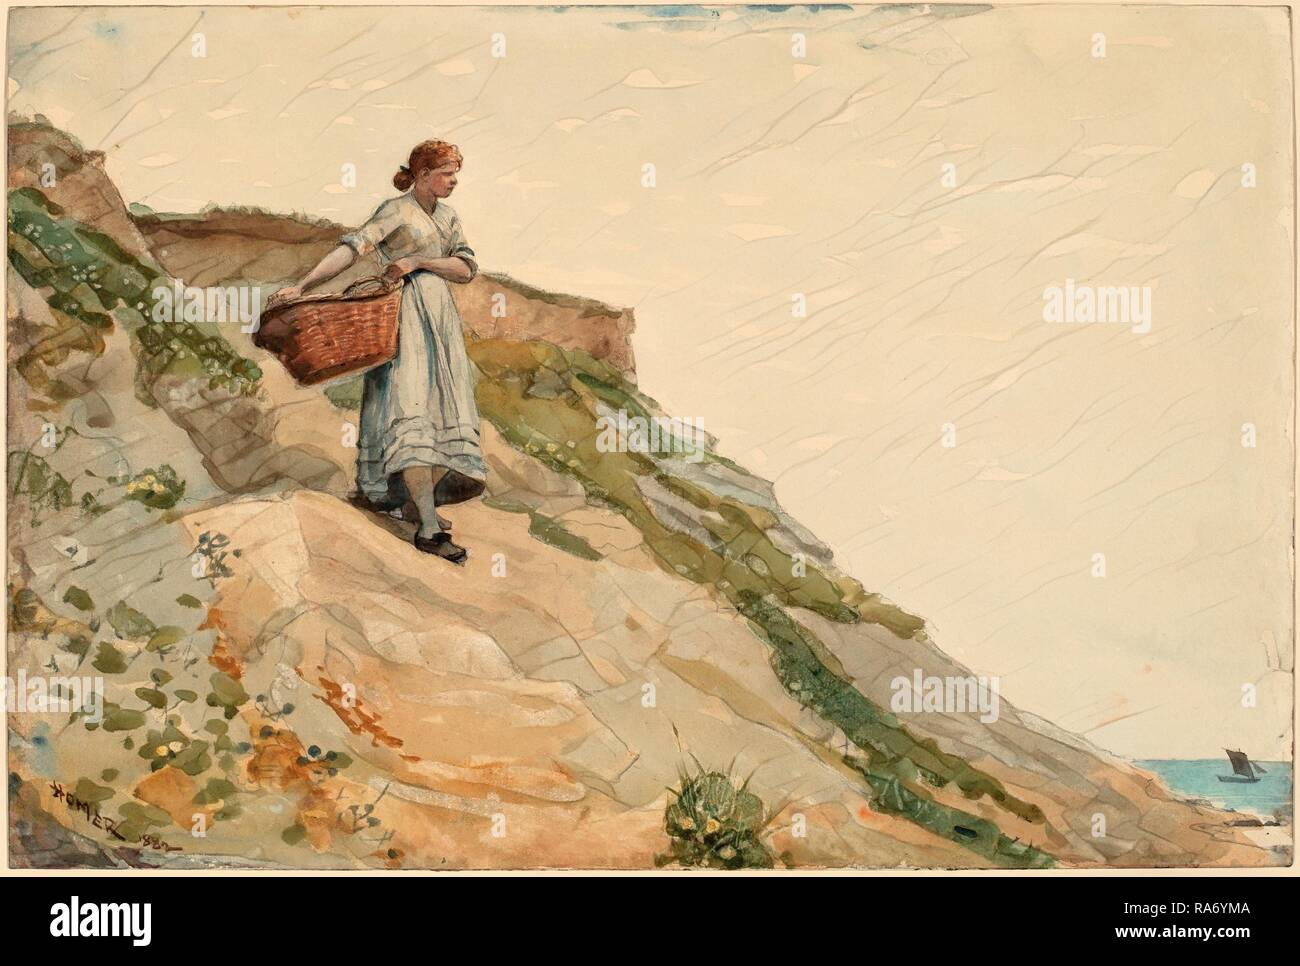 Winslow Homer, Girl Carrying a Basket, American, 1836 - 1910, 1882, watercolor over graphite. Reimagined - Stock Image